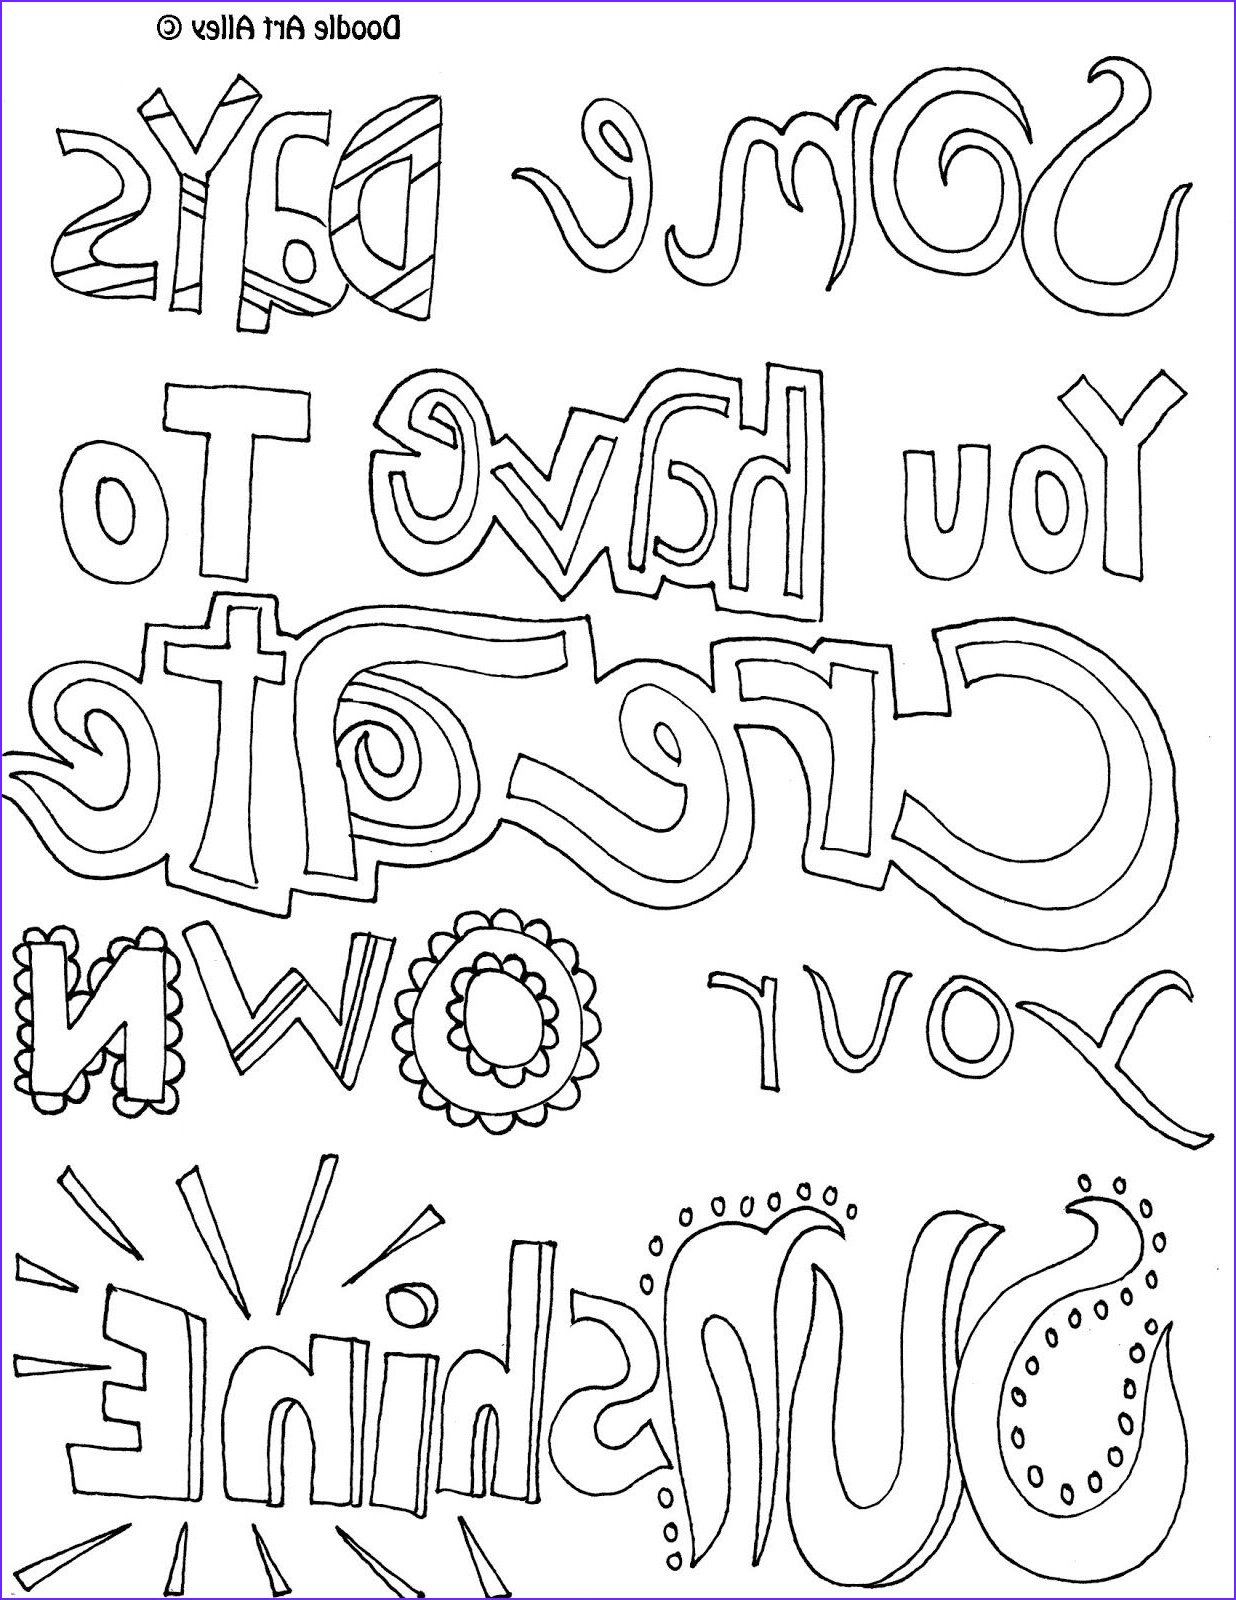 Easy Adult Coloring Pages Elegant Photos All Quotes Coloring Pages Great Quotes Doodle Page Great